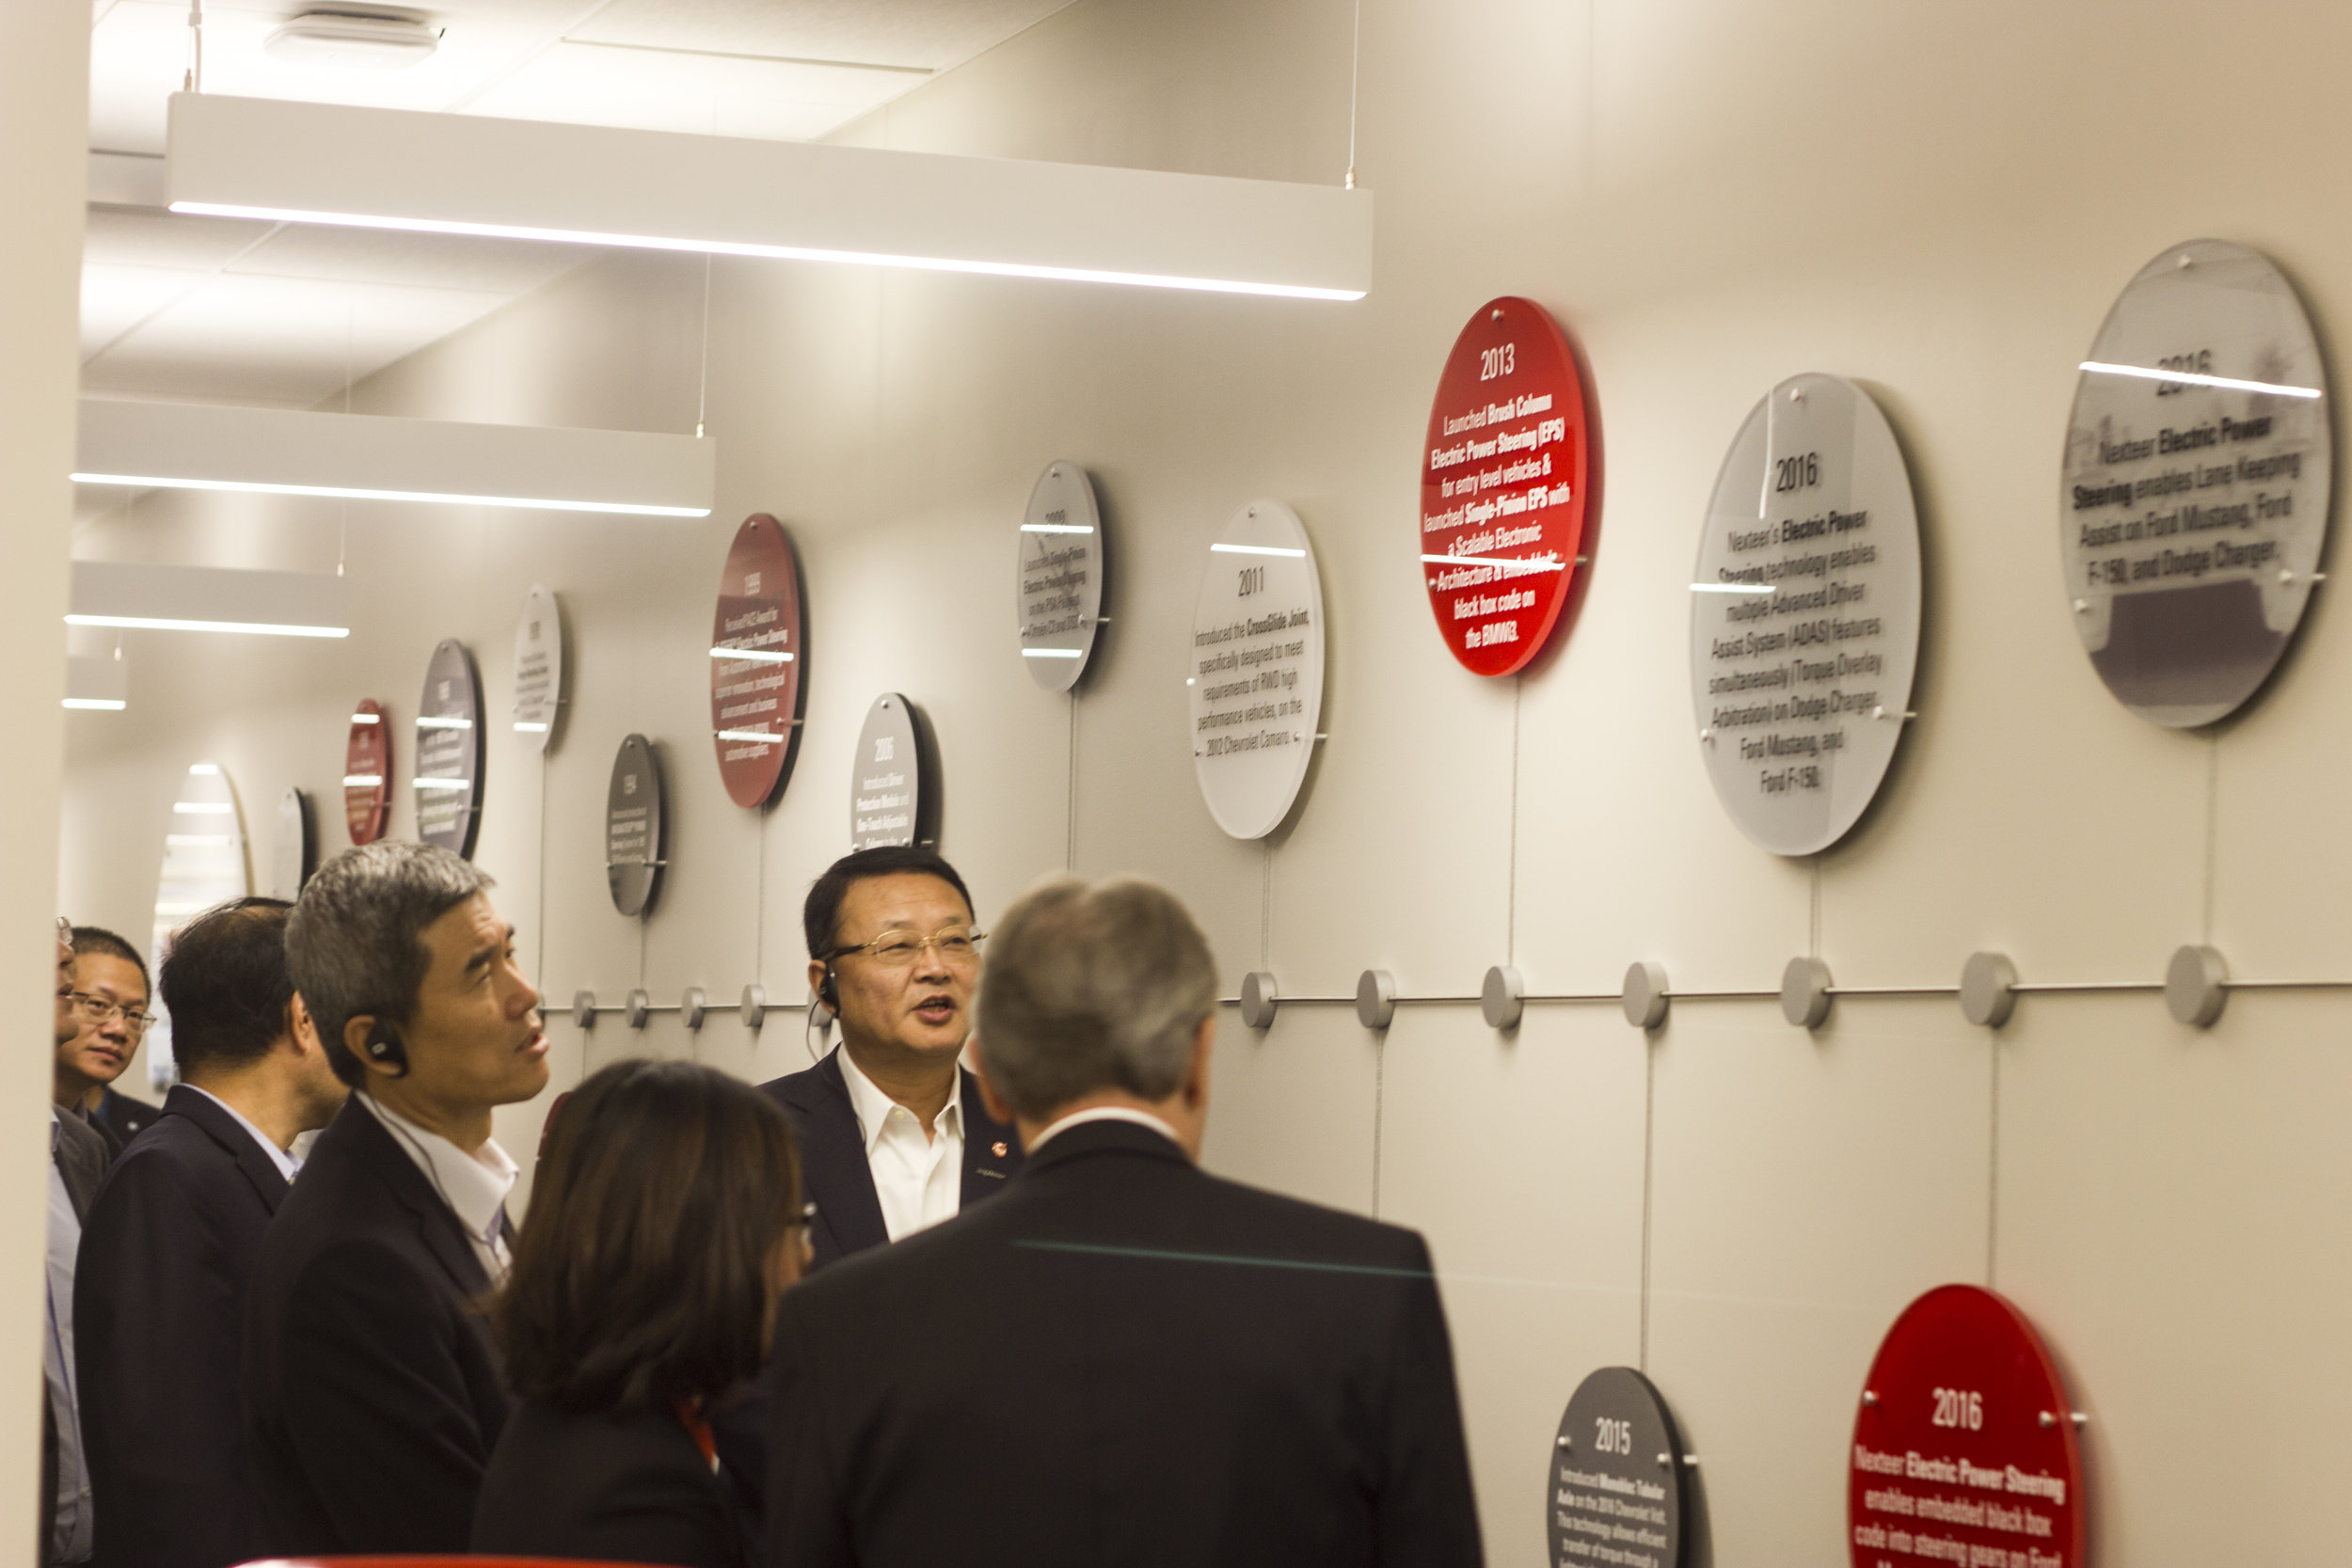 Nexteer president & board viewing the  Timeline of Innovation installation I designed and produced for the Nexteer Auburn Hills World Headquarters.